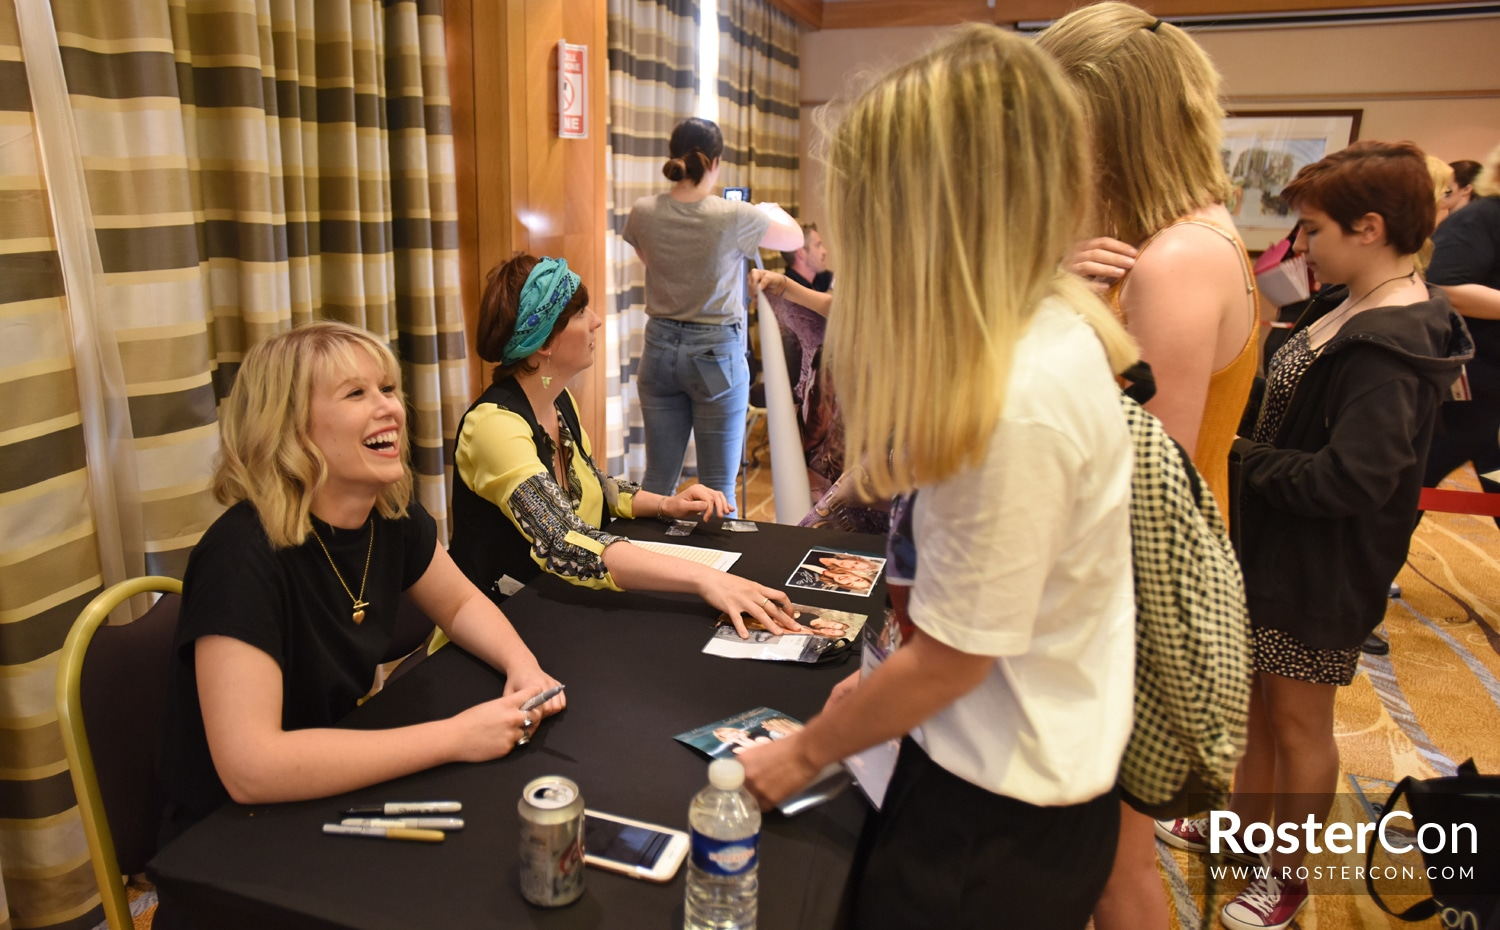 Rose Reynolds - The Happy Ending Convention 3 - Once Upon A Time